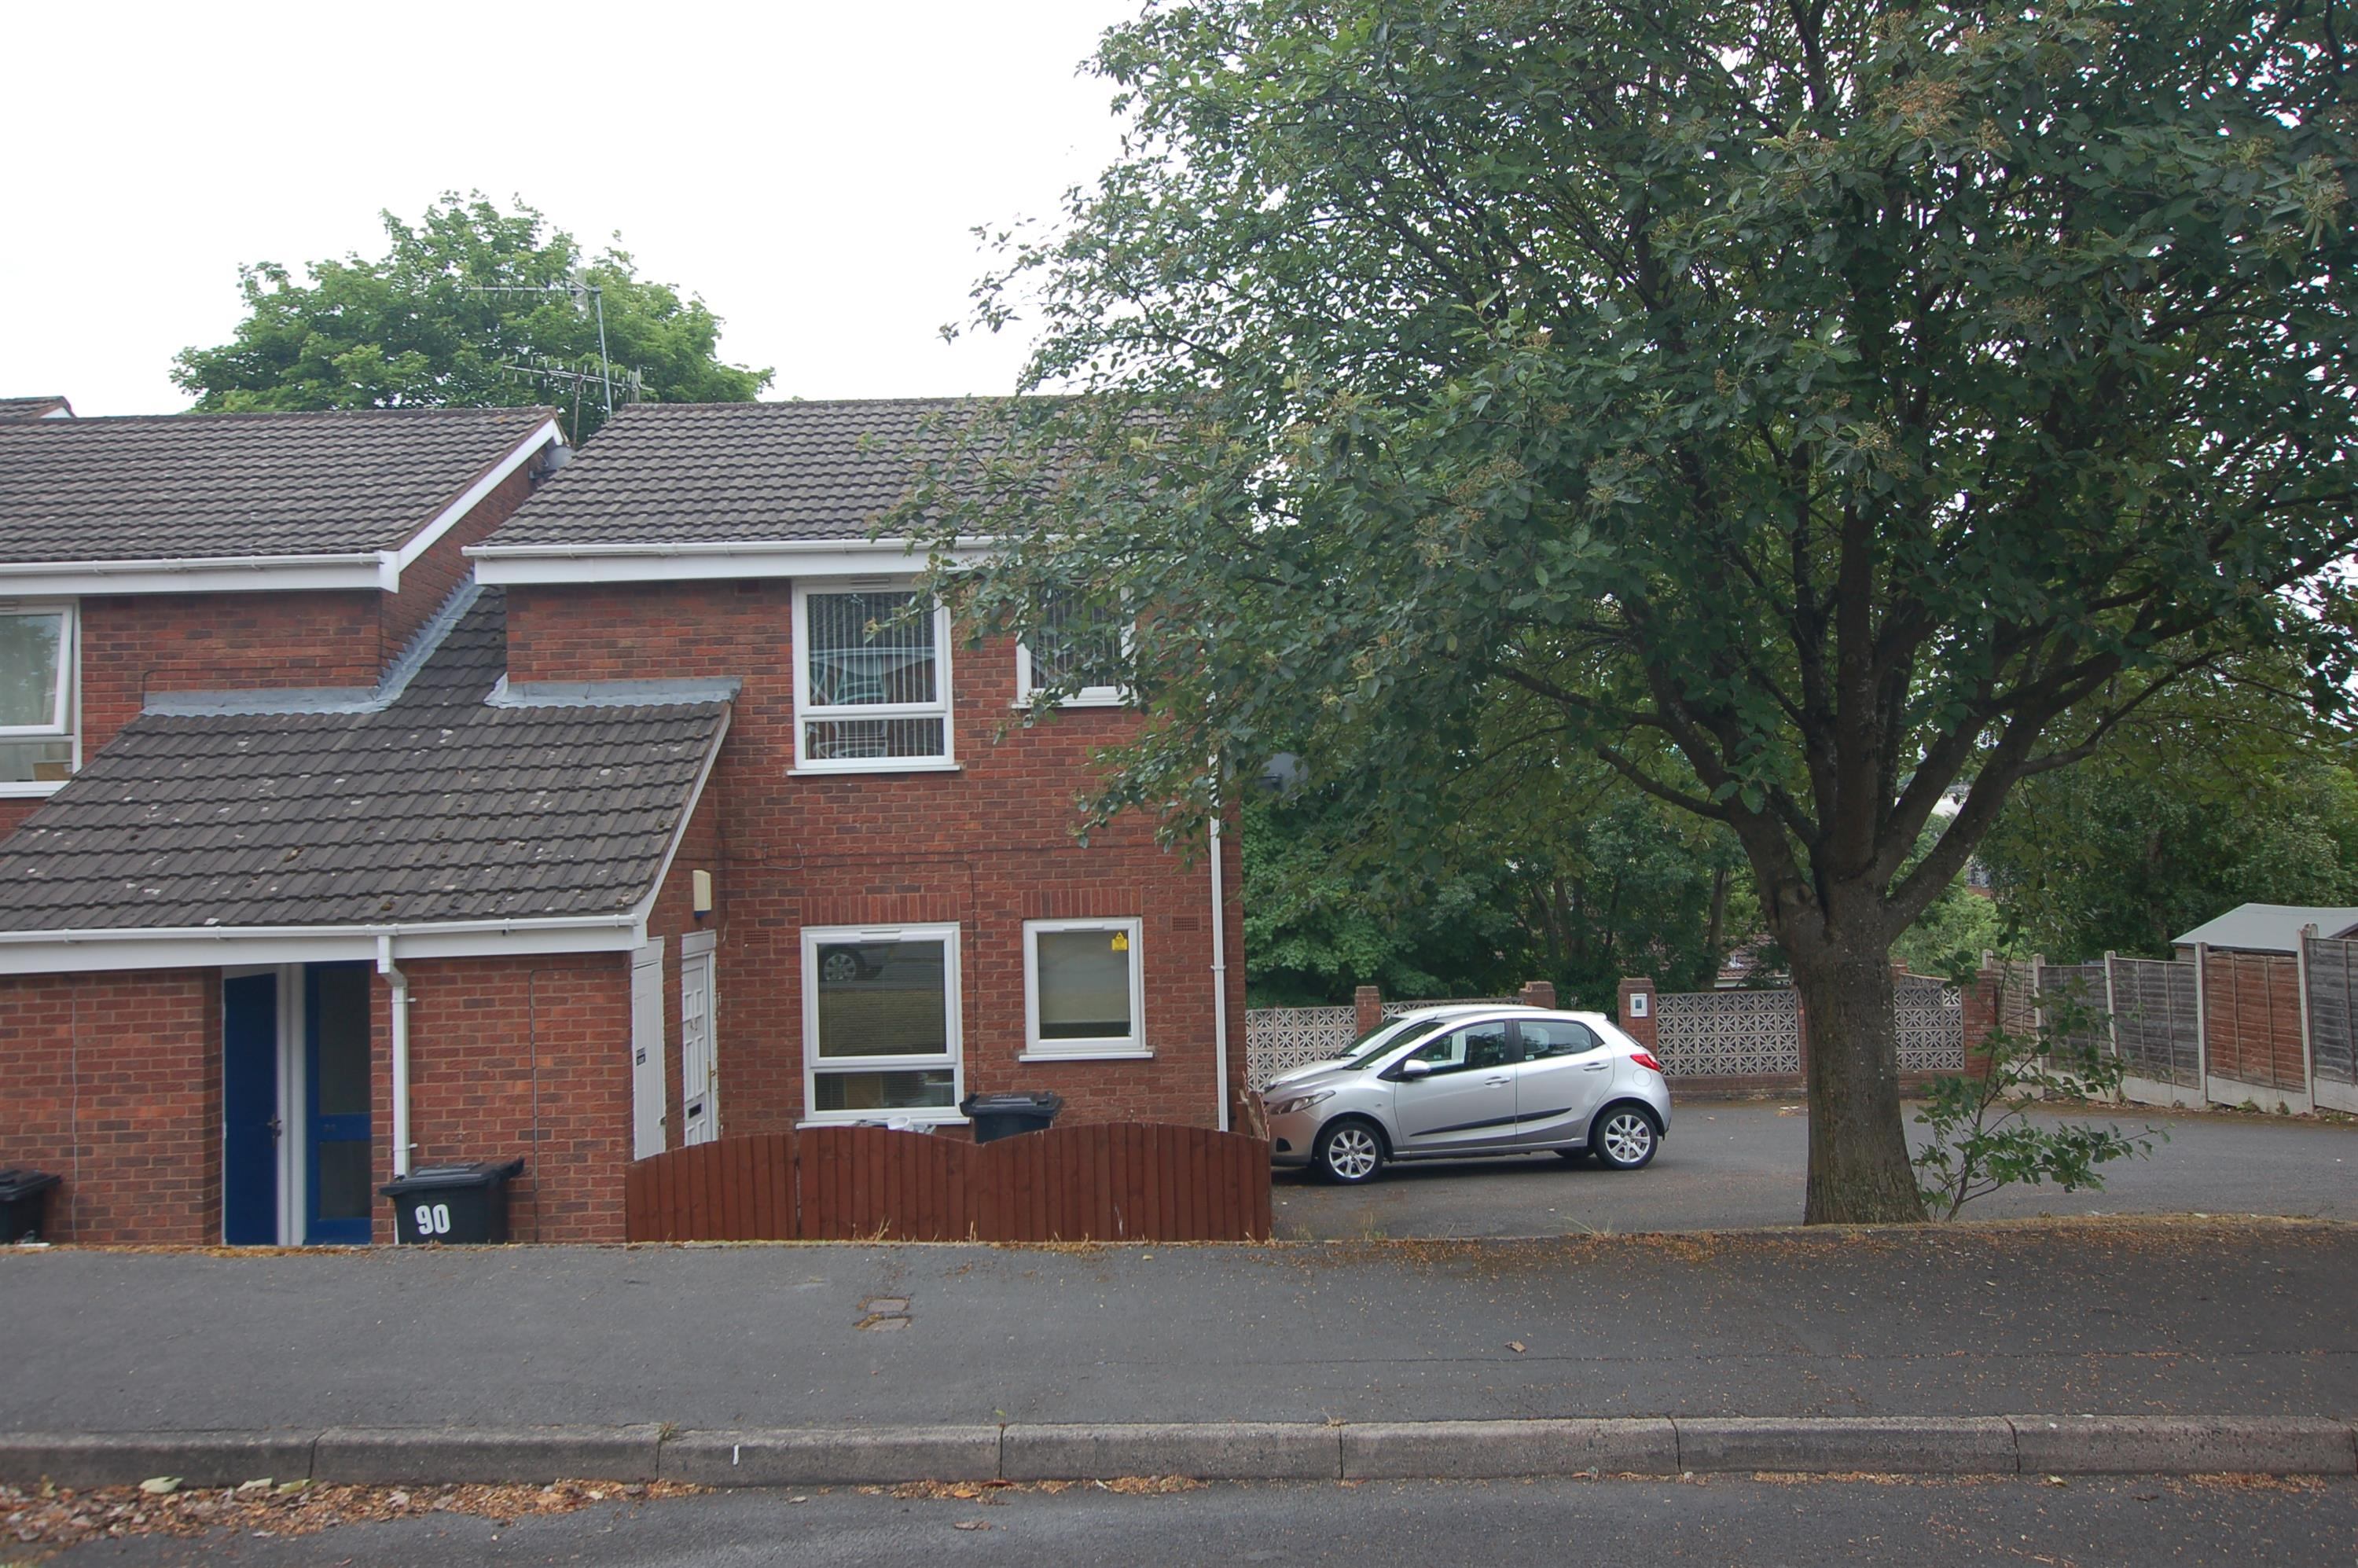 Bisell Way, Brierley Hill, DY5 2RZ